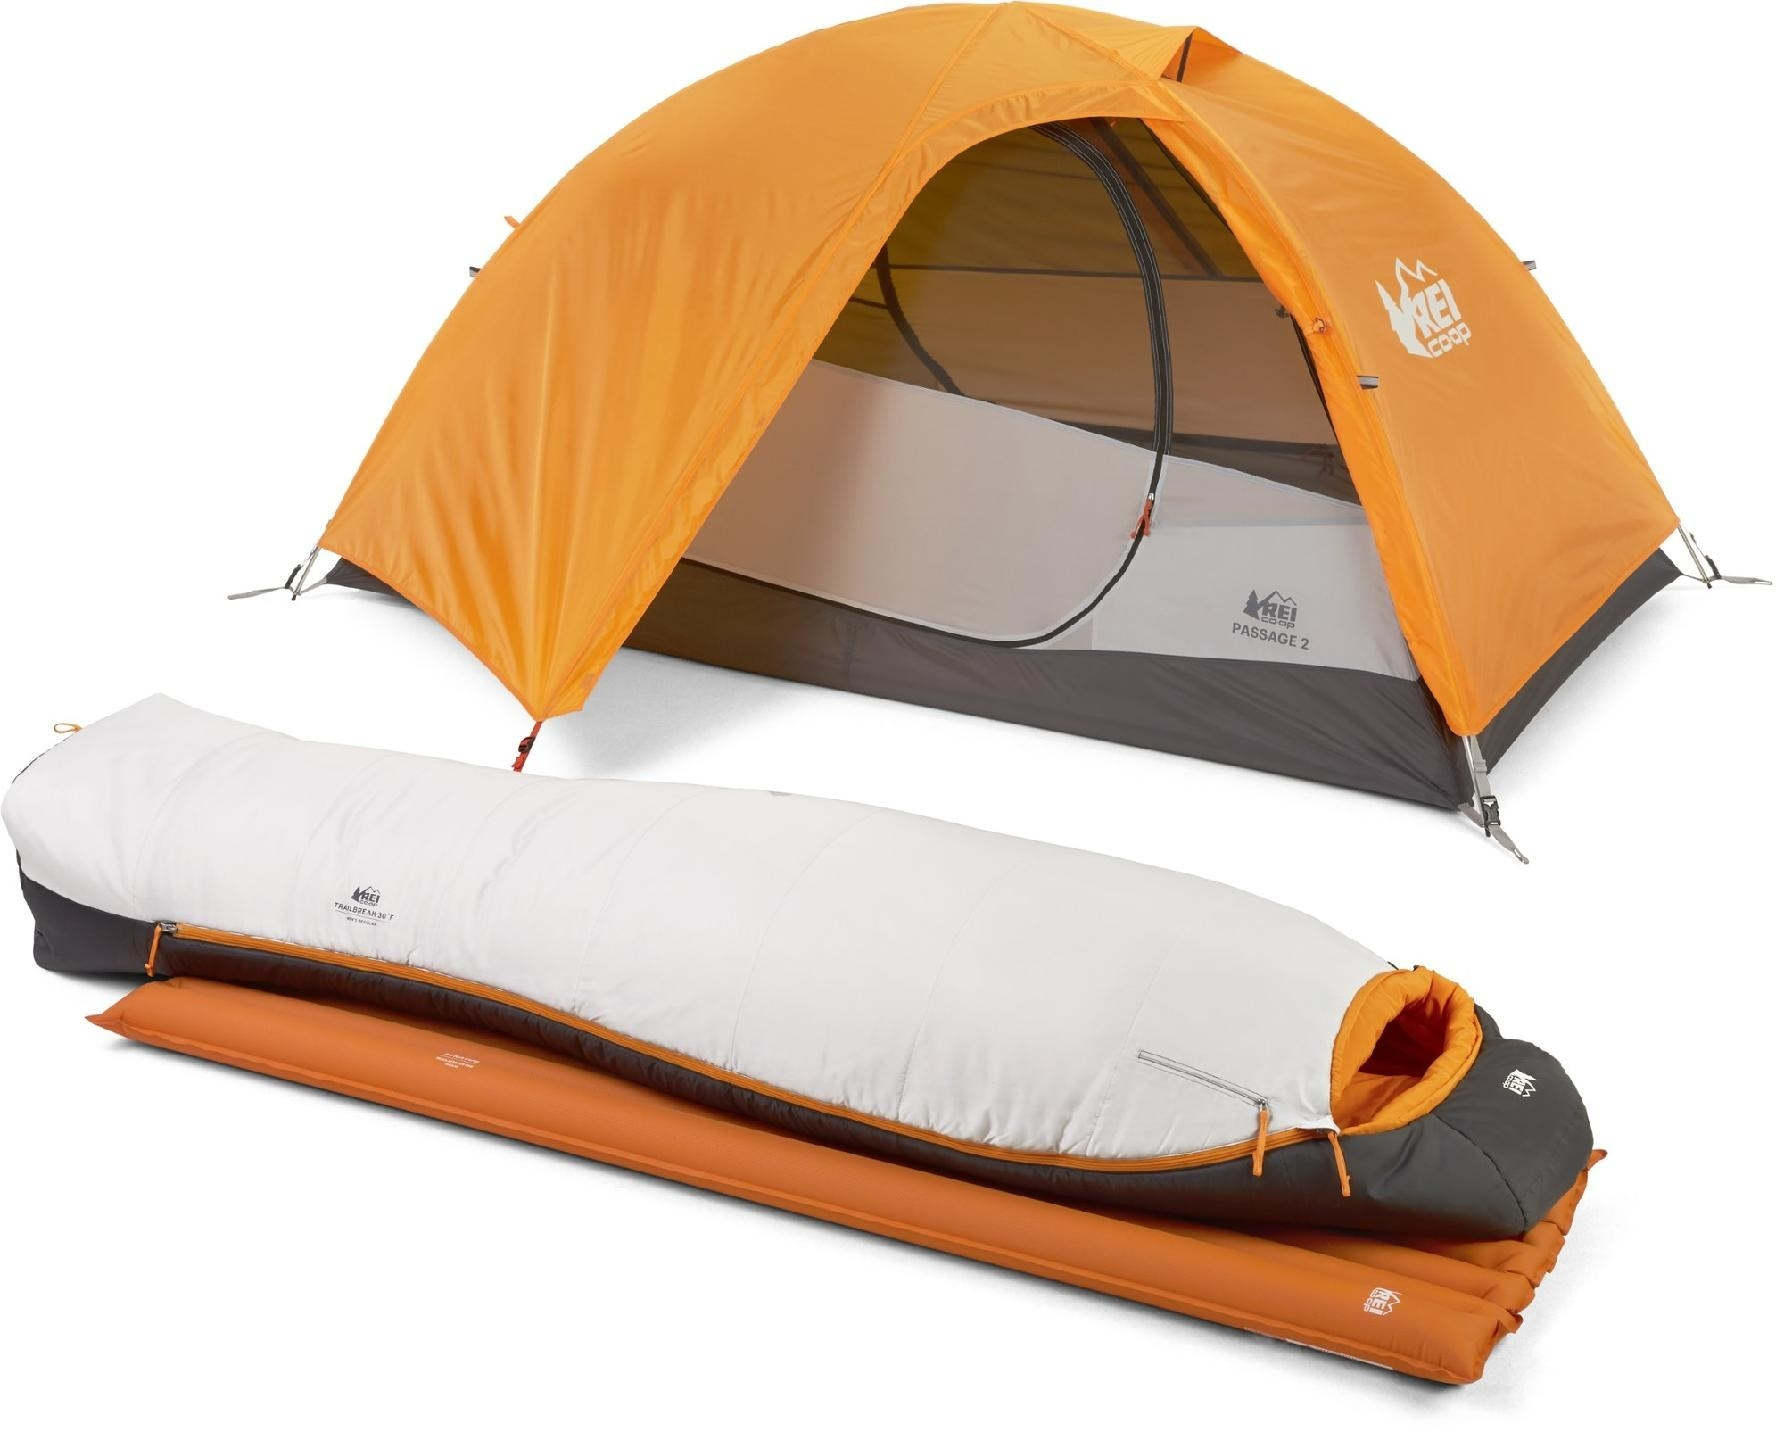 The orange tent, sleeping bag, and sleeping pad on display next to each other